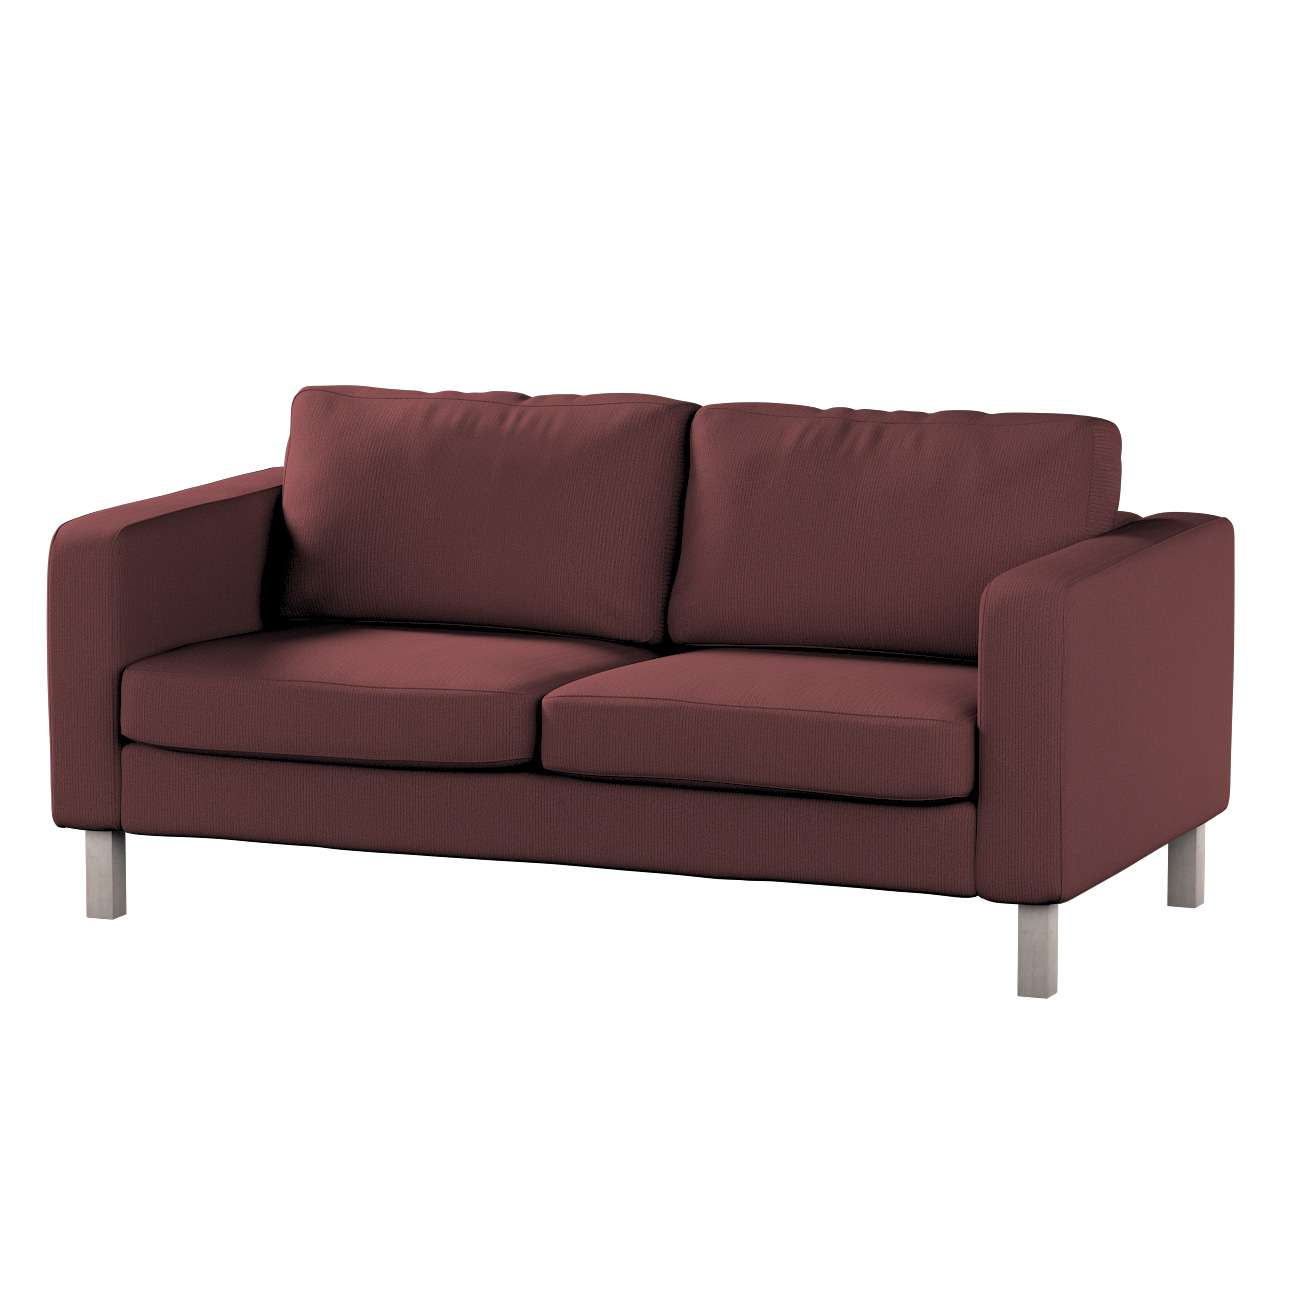 Karlstad 2-seater sofa cover in collection Living, fabric: 103-56